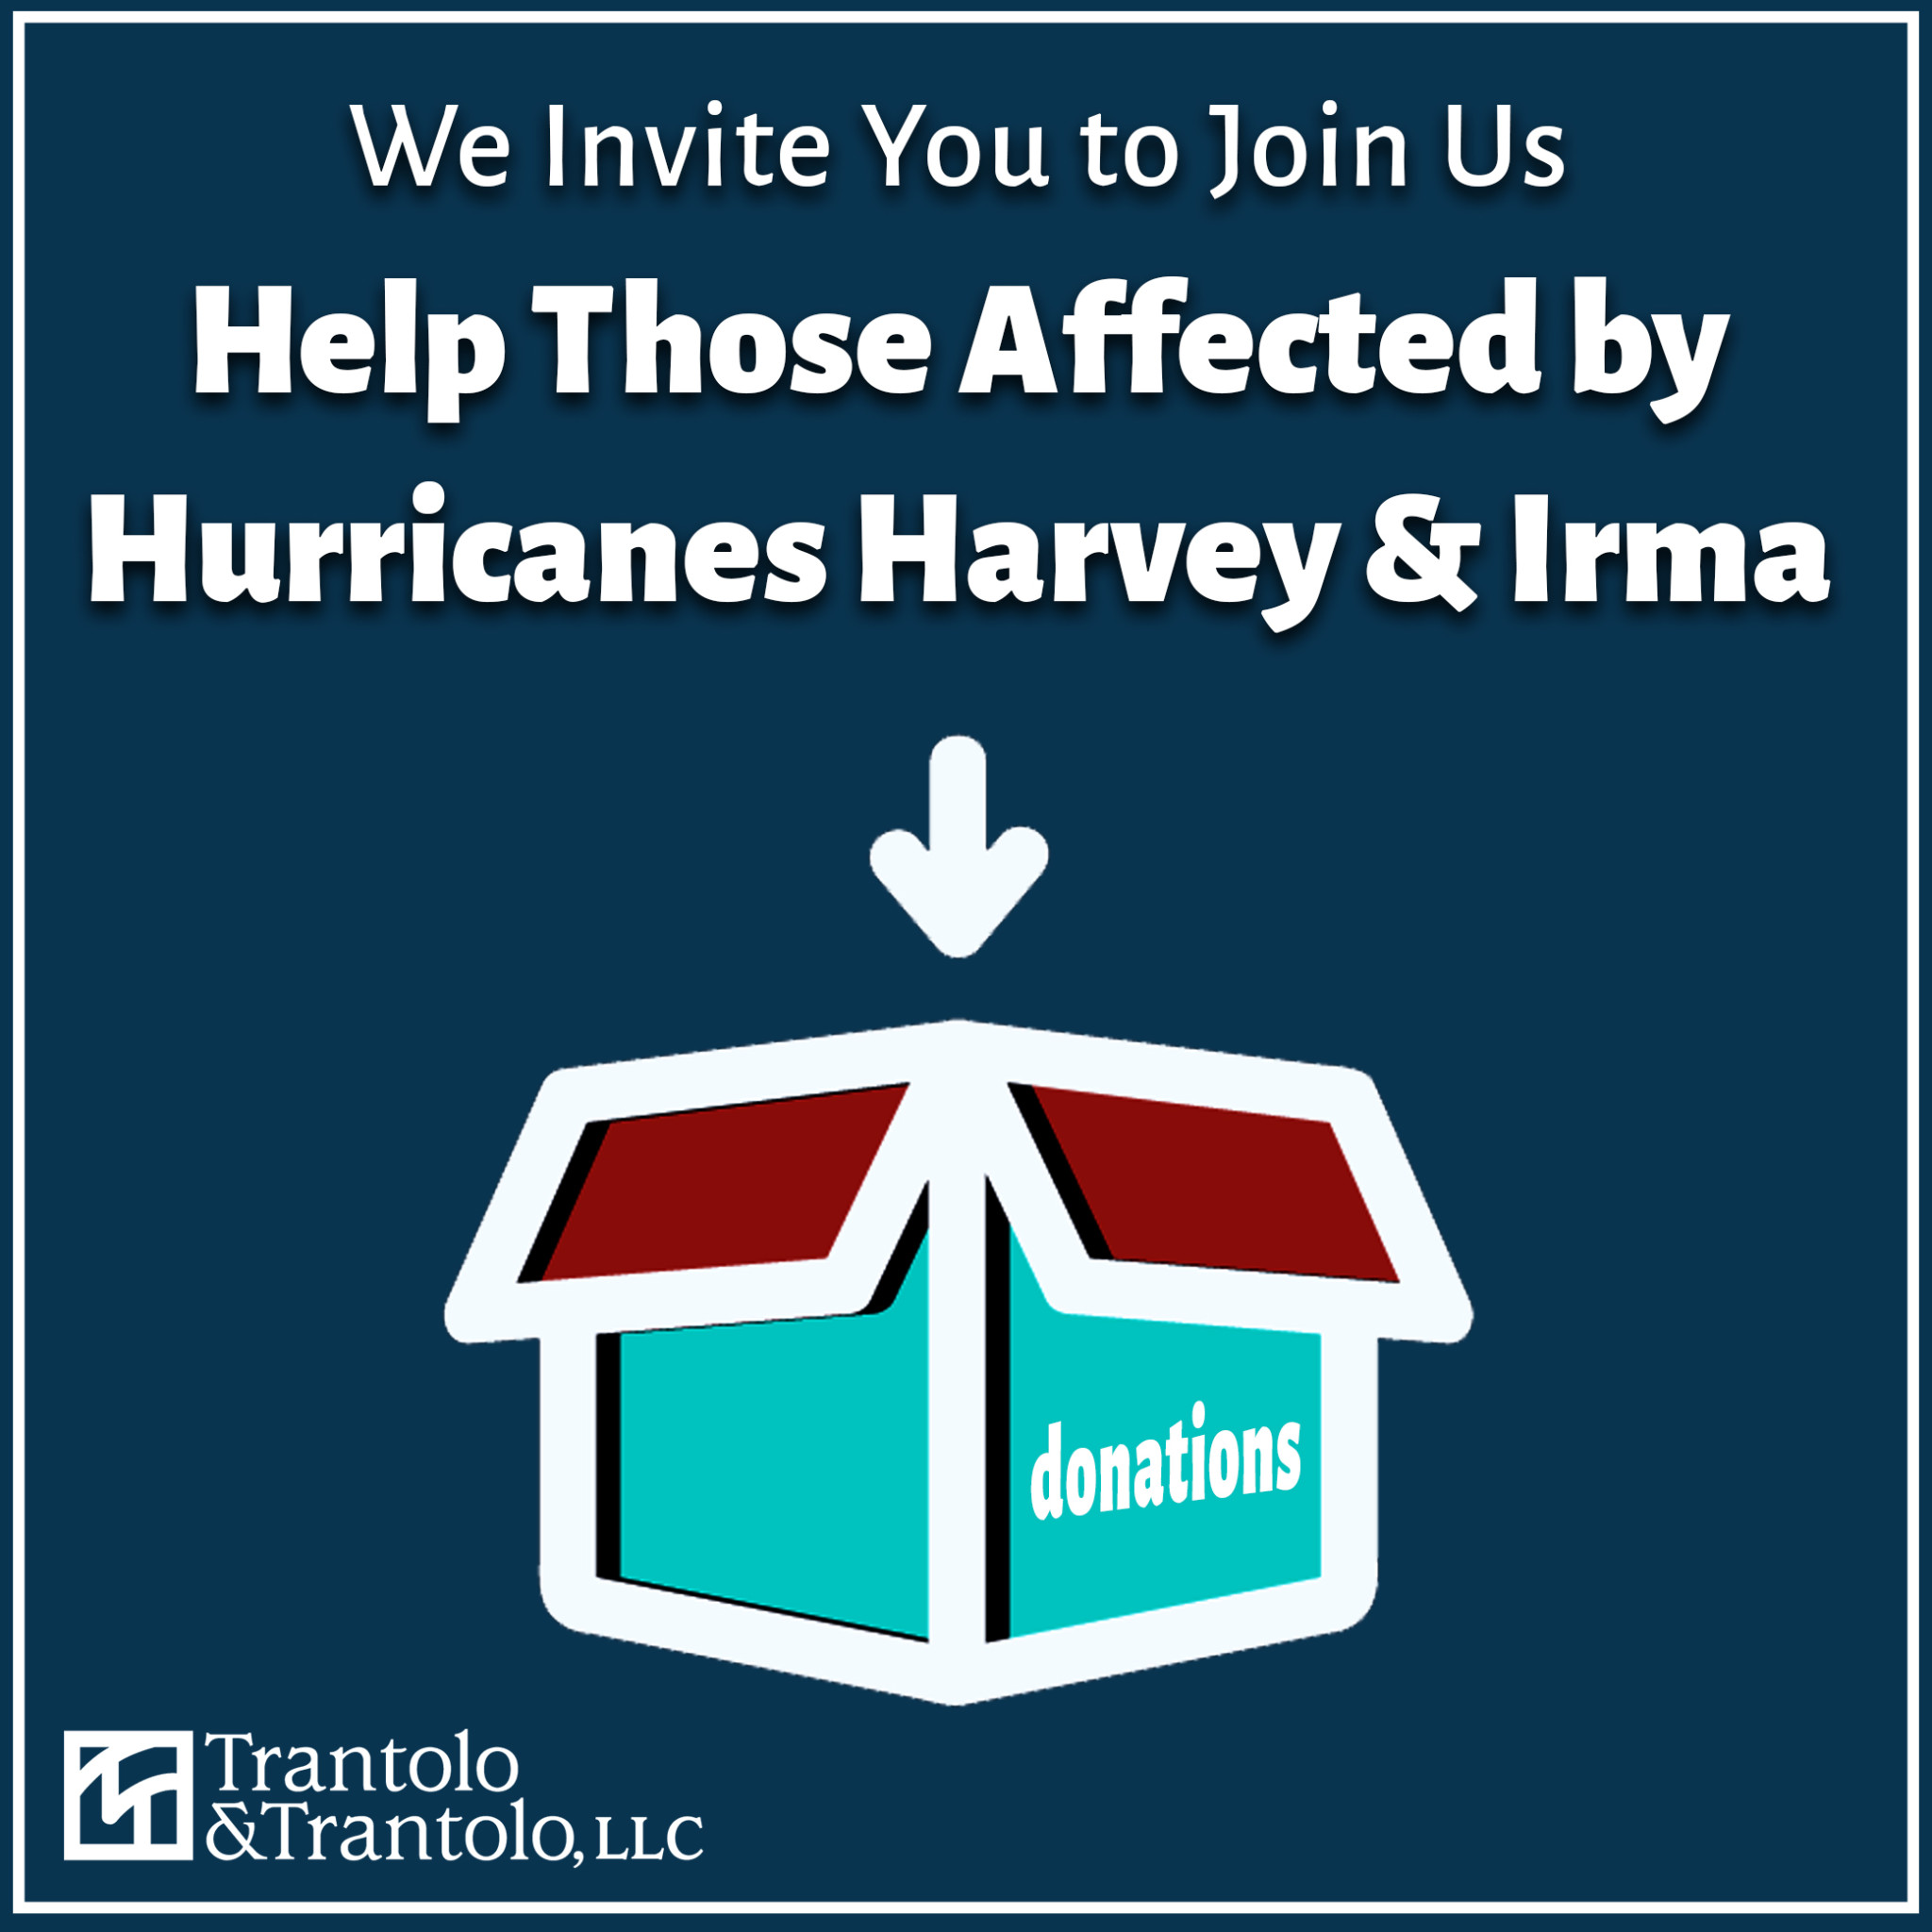 Help Those Affected by Hurricanes Harvey & Irma